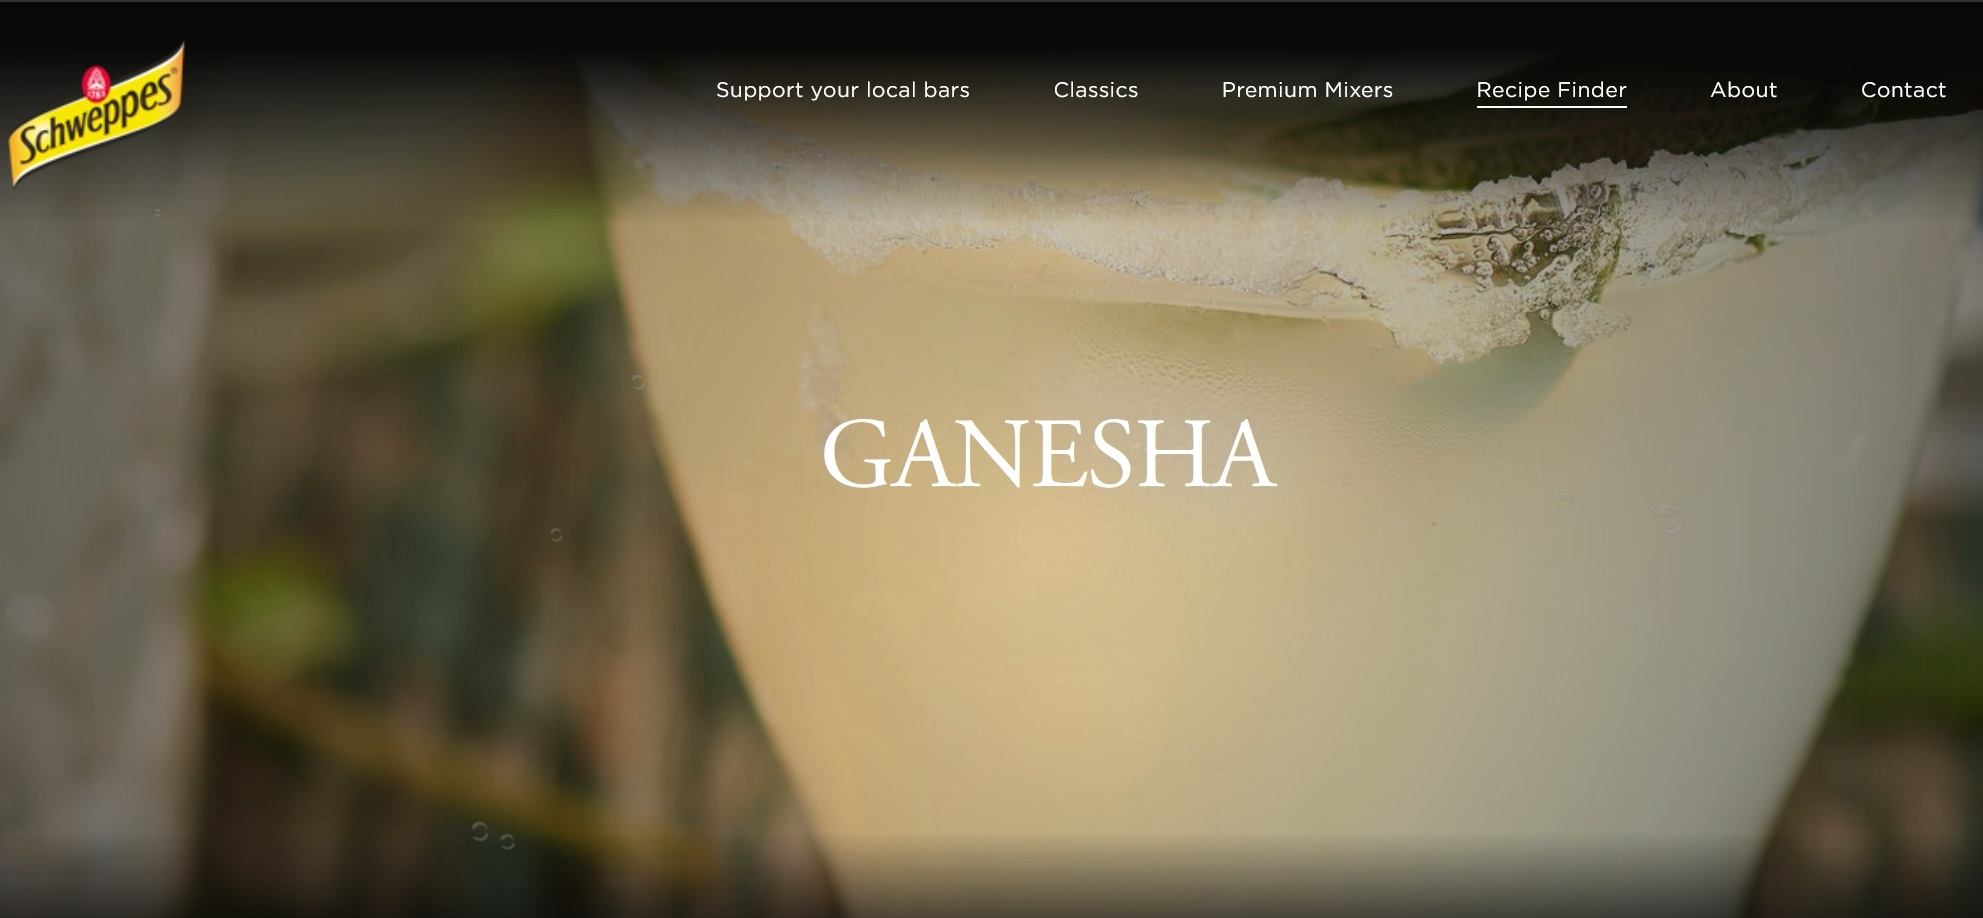 Schweppes Urged To Stop Promoting Lord Ganesh Cocktail photo